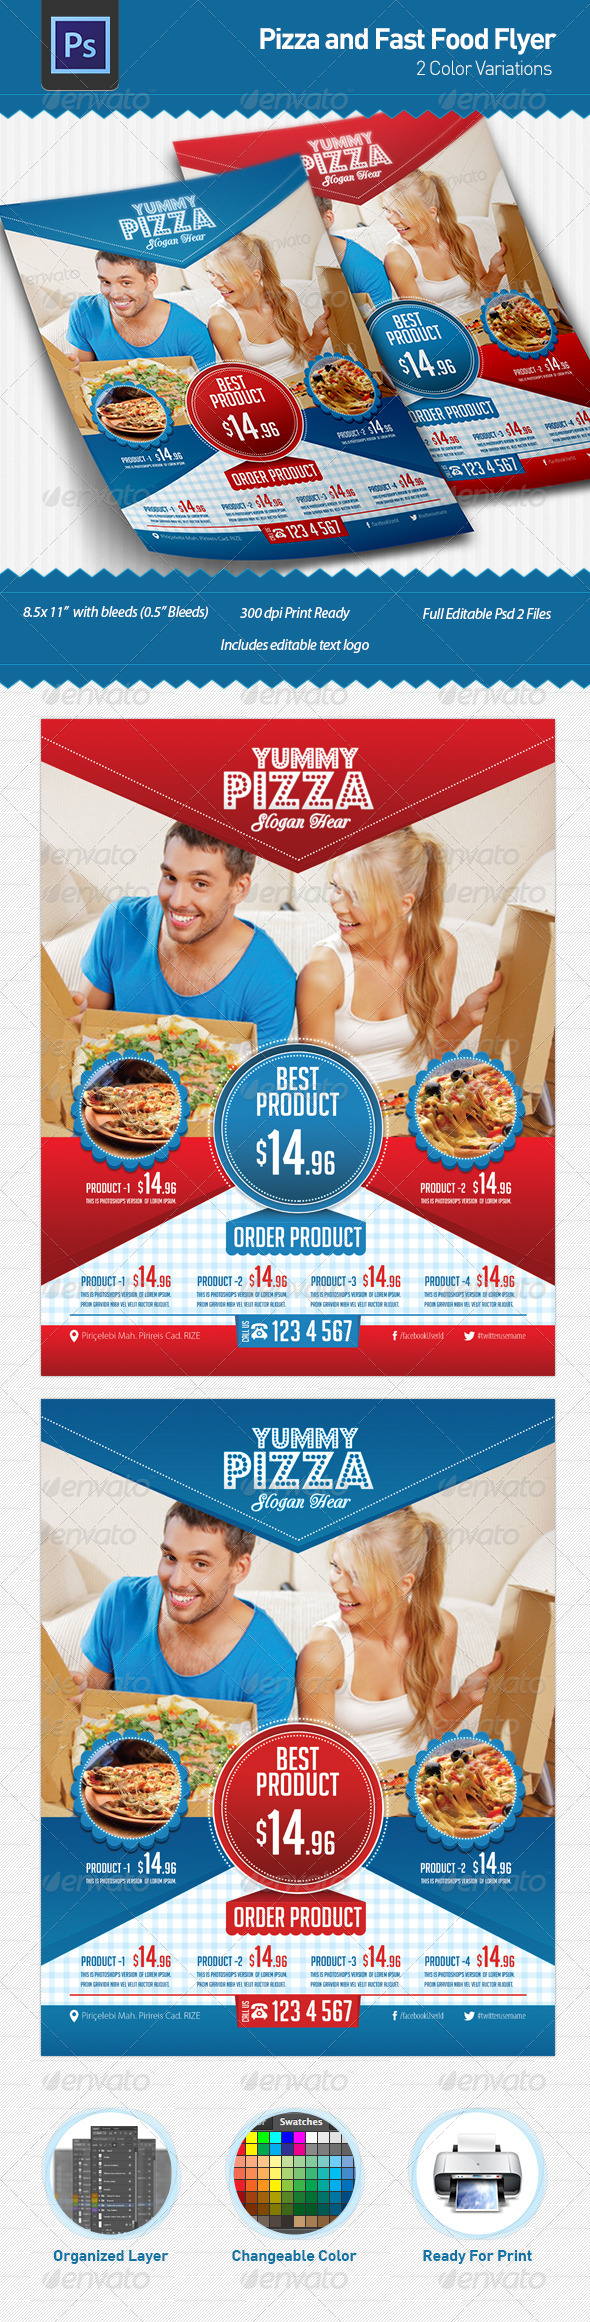 Pizza and Fast Food Flyer - Restaurant Flyers